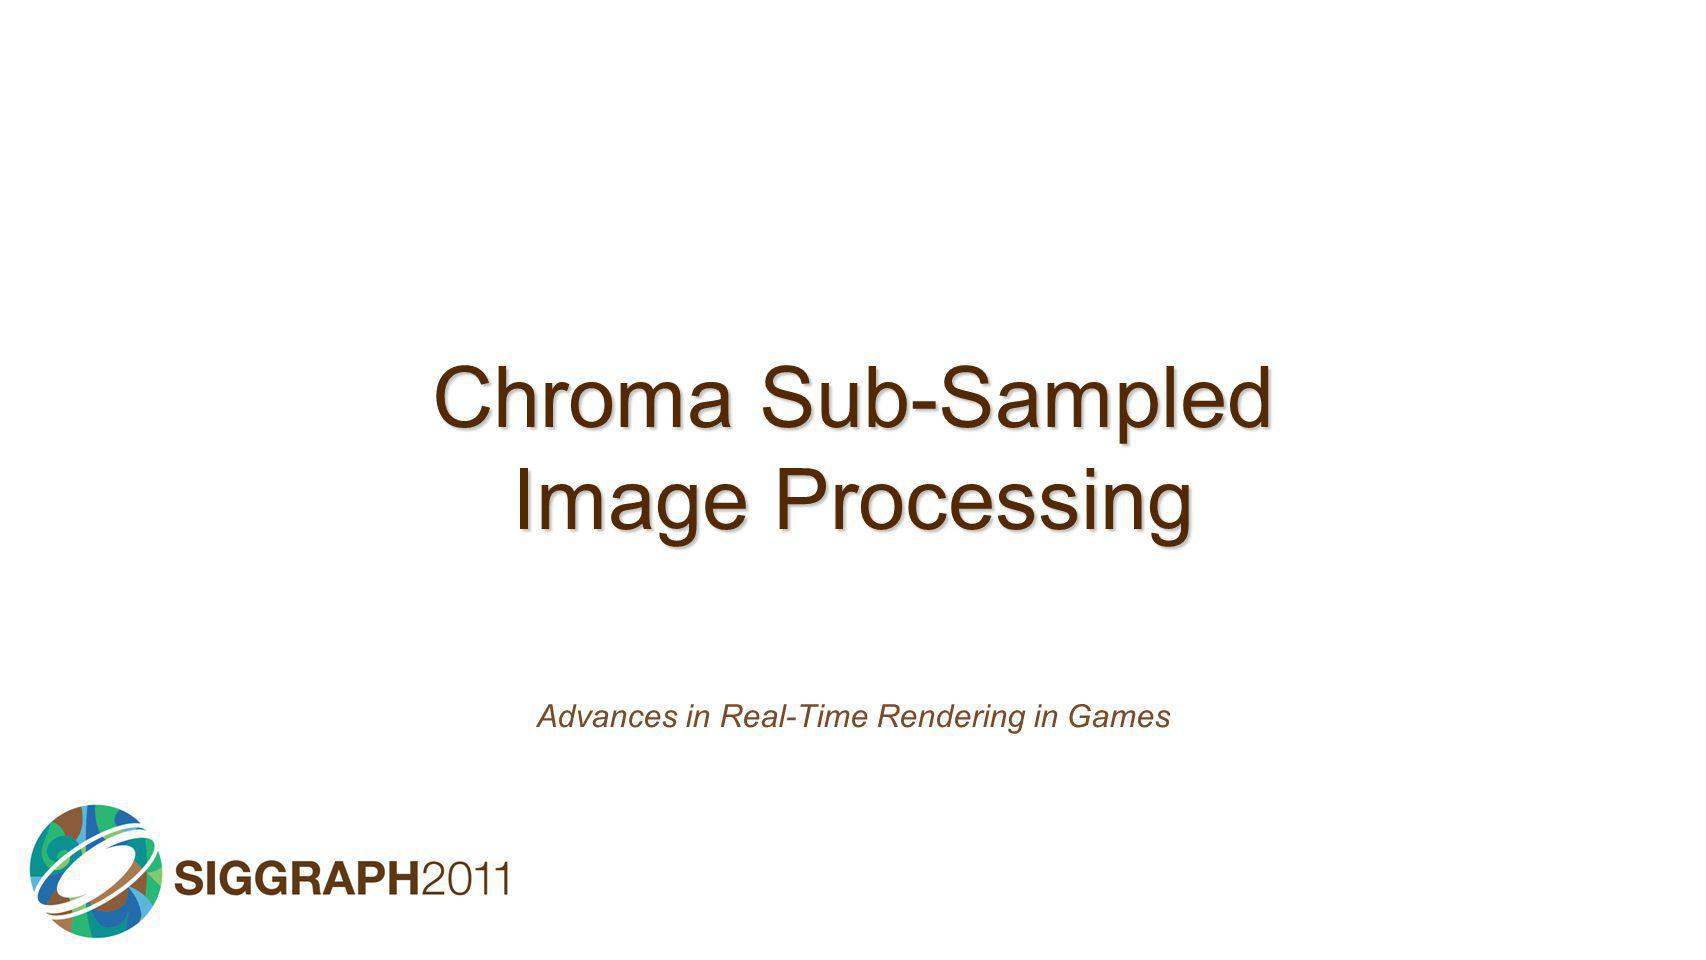 Chroma Sub-Sampled Image Processing Advances in Real-Time Rendering in Games